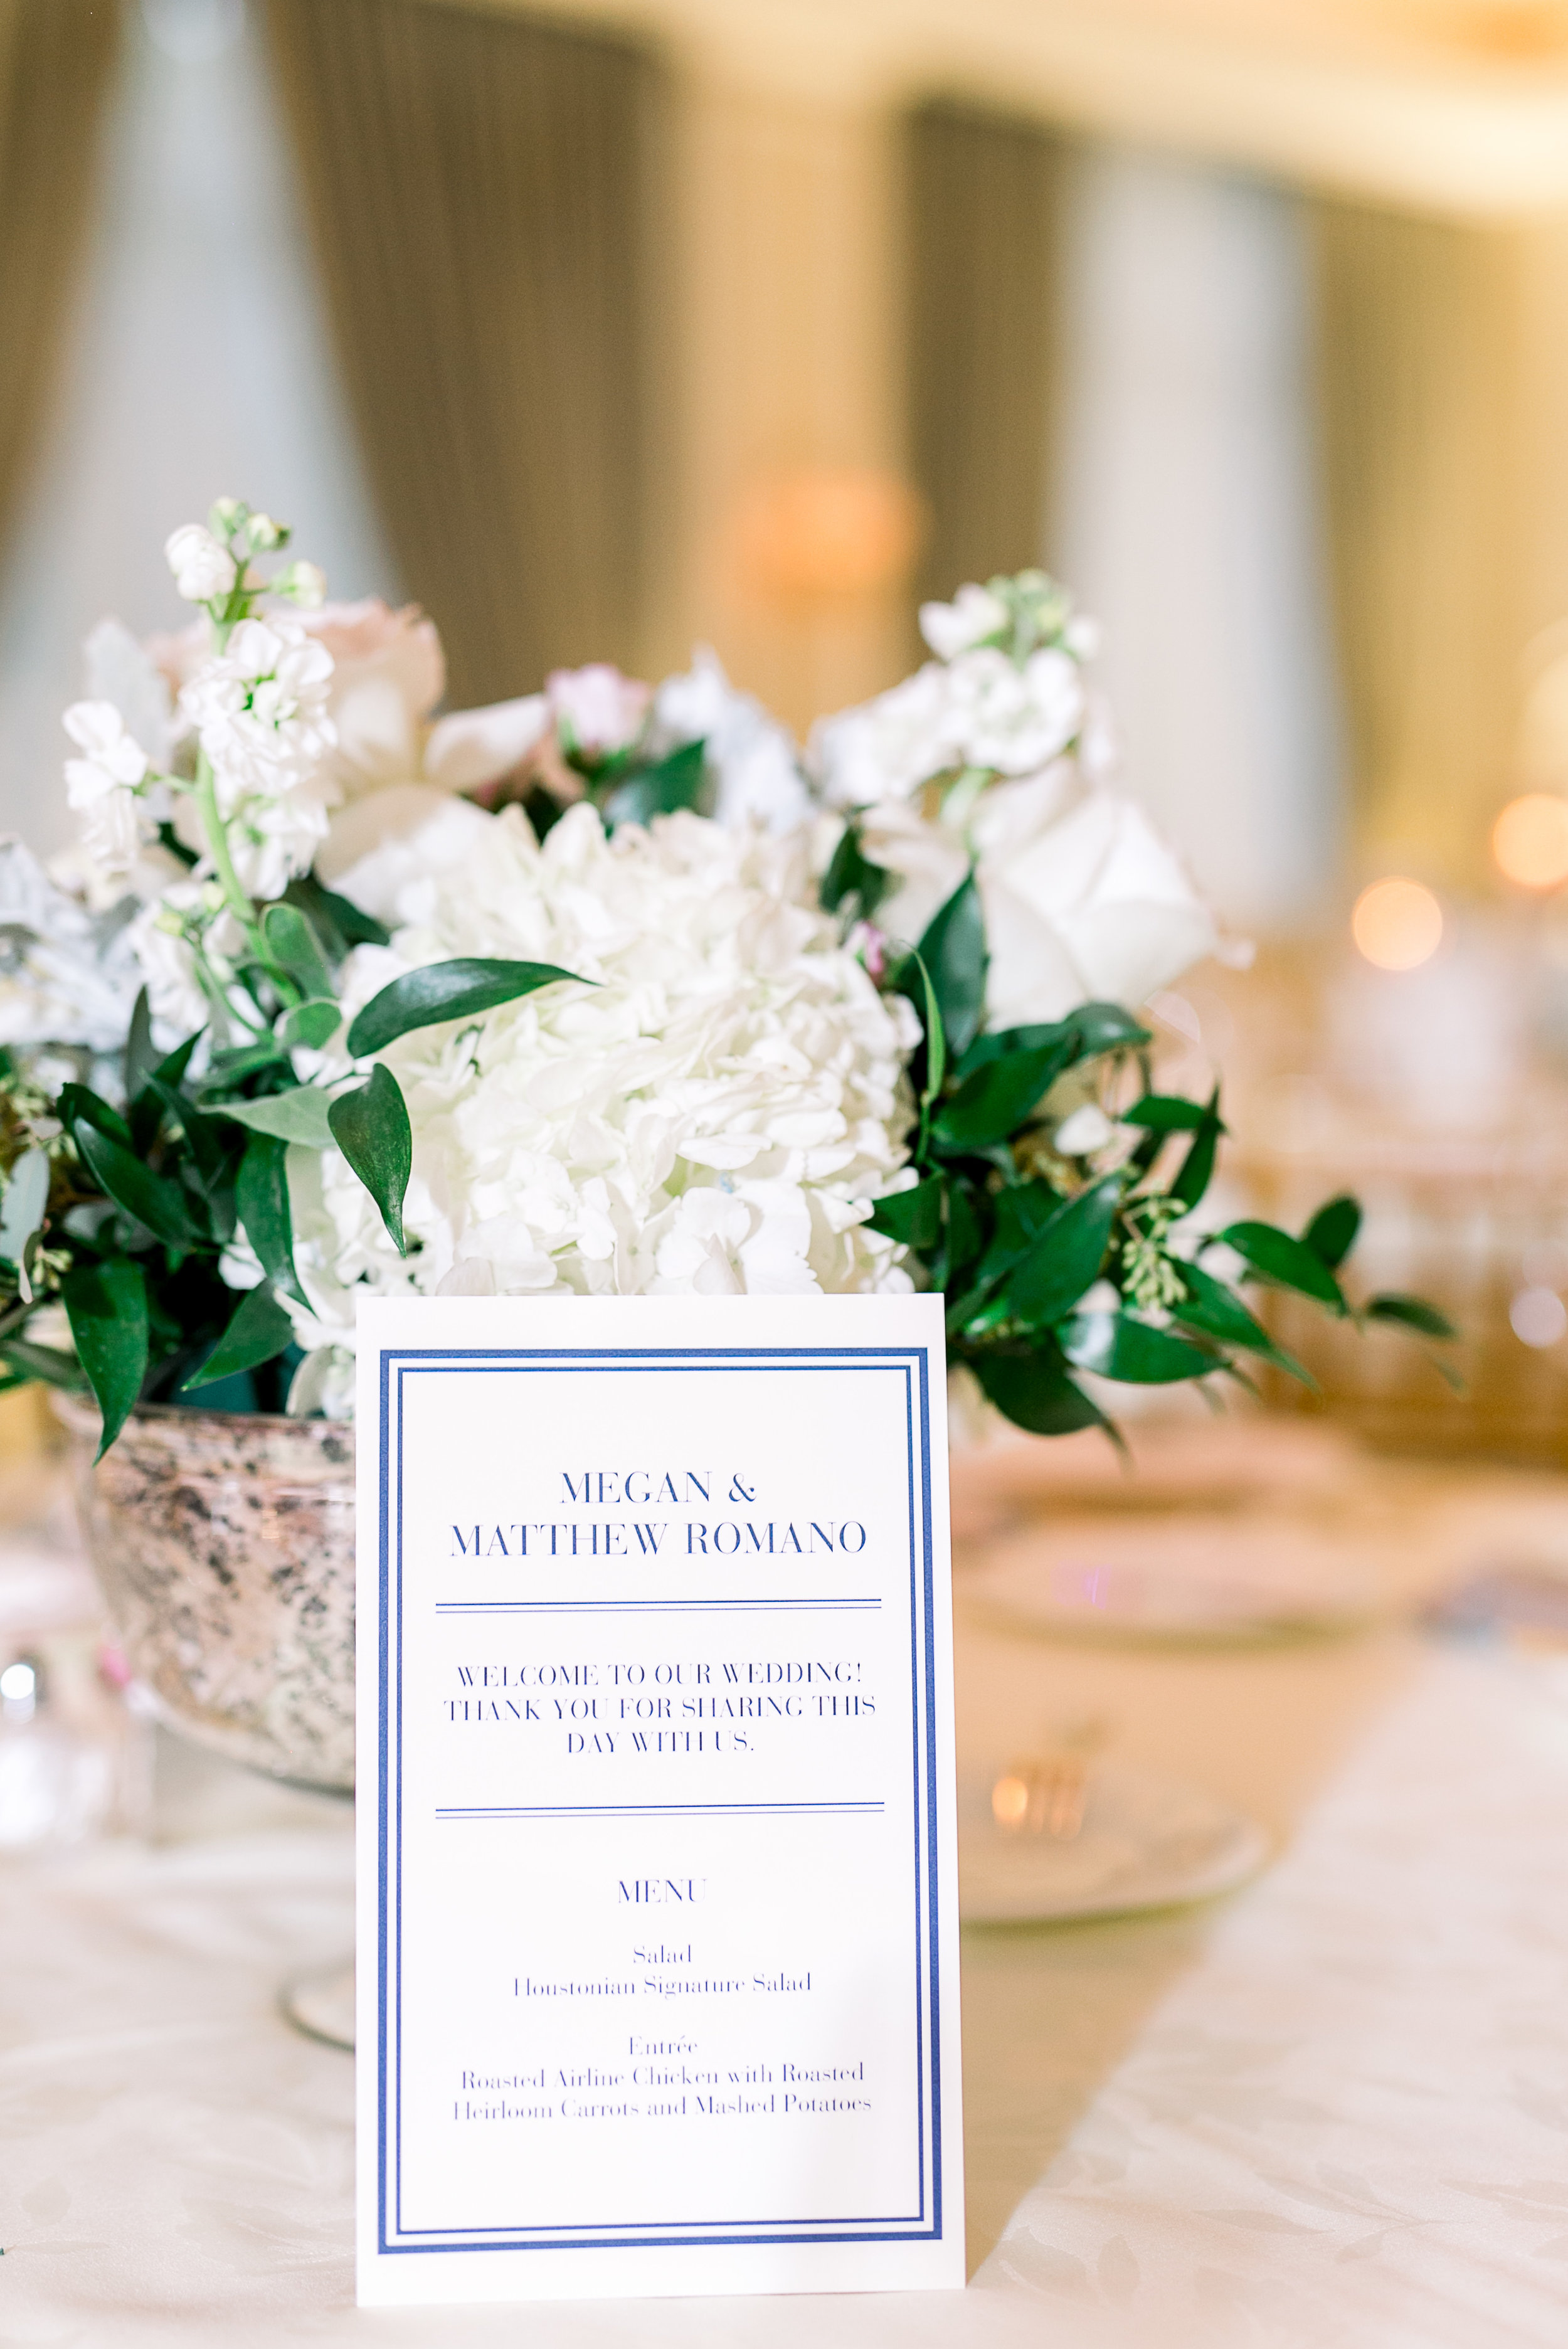 Blue and White menu card in front of a white and blush floral centerpiece